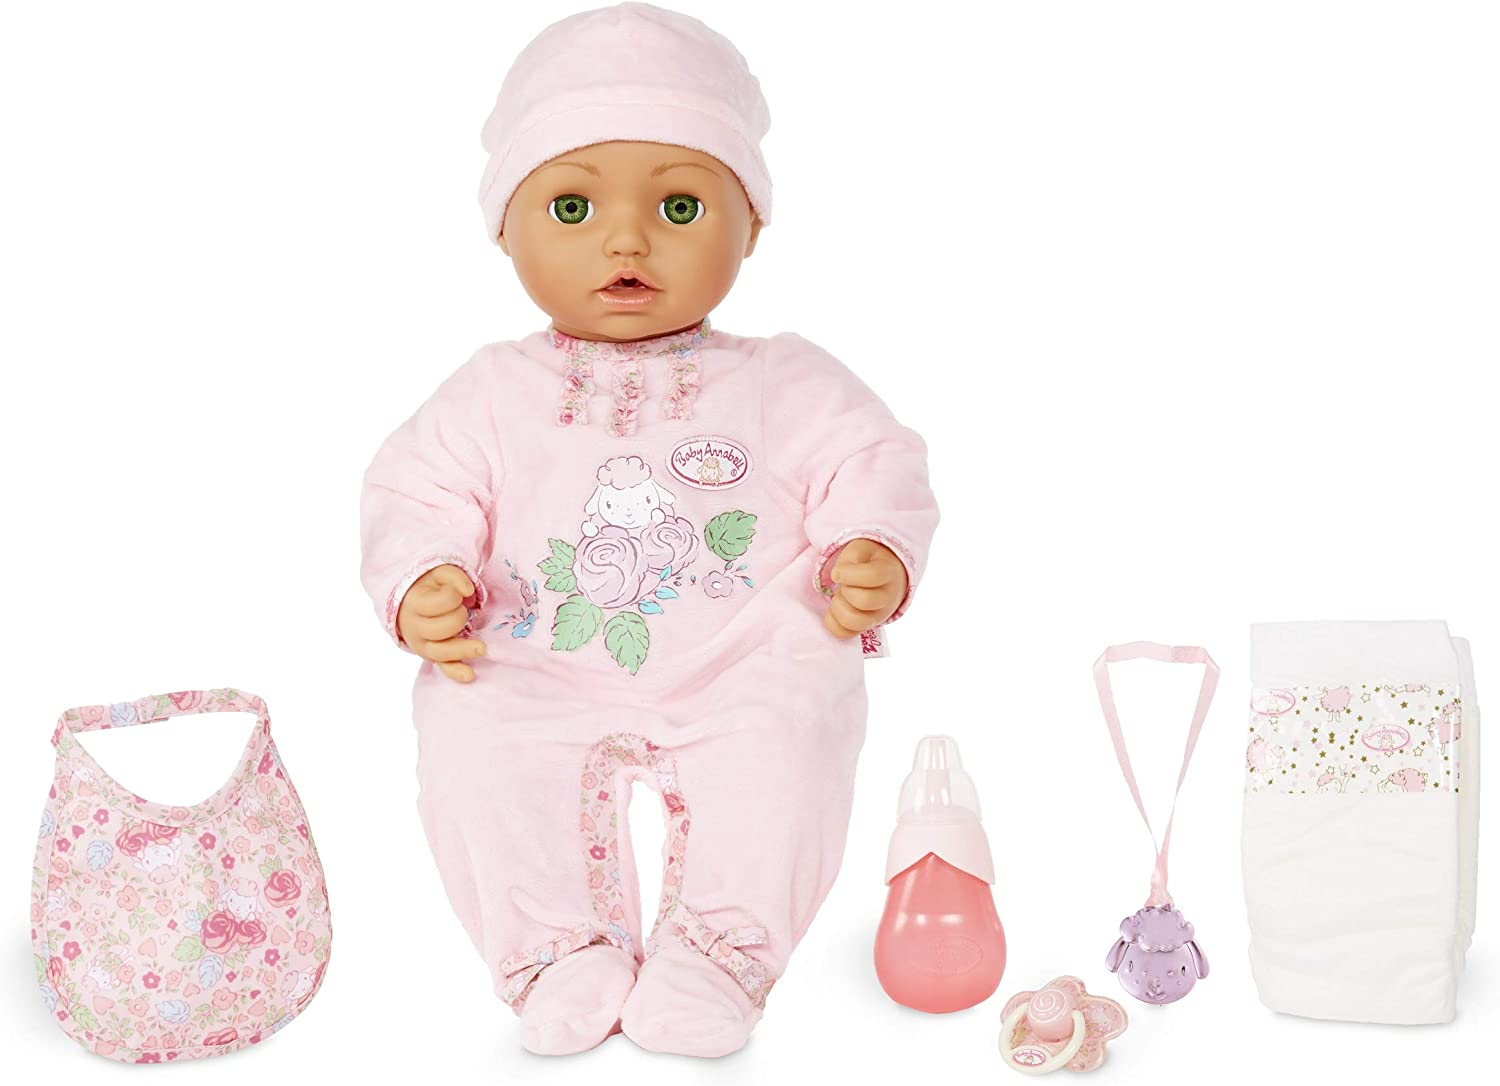 Baby Annabell with Green Eyes Soft-Bodied Baby Doll